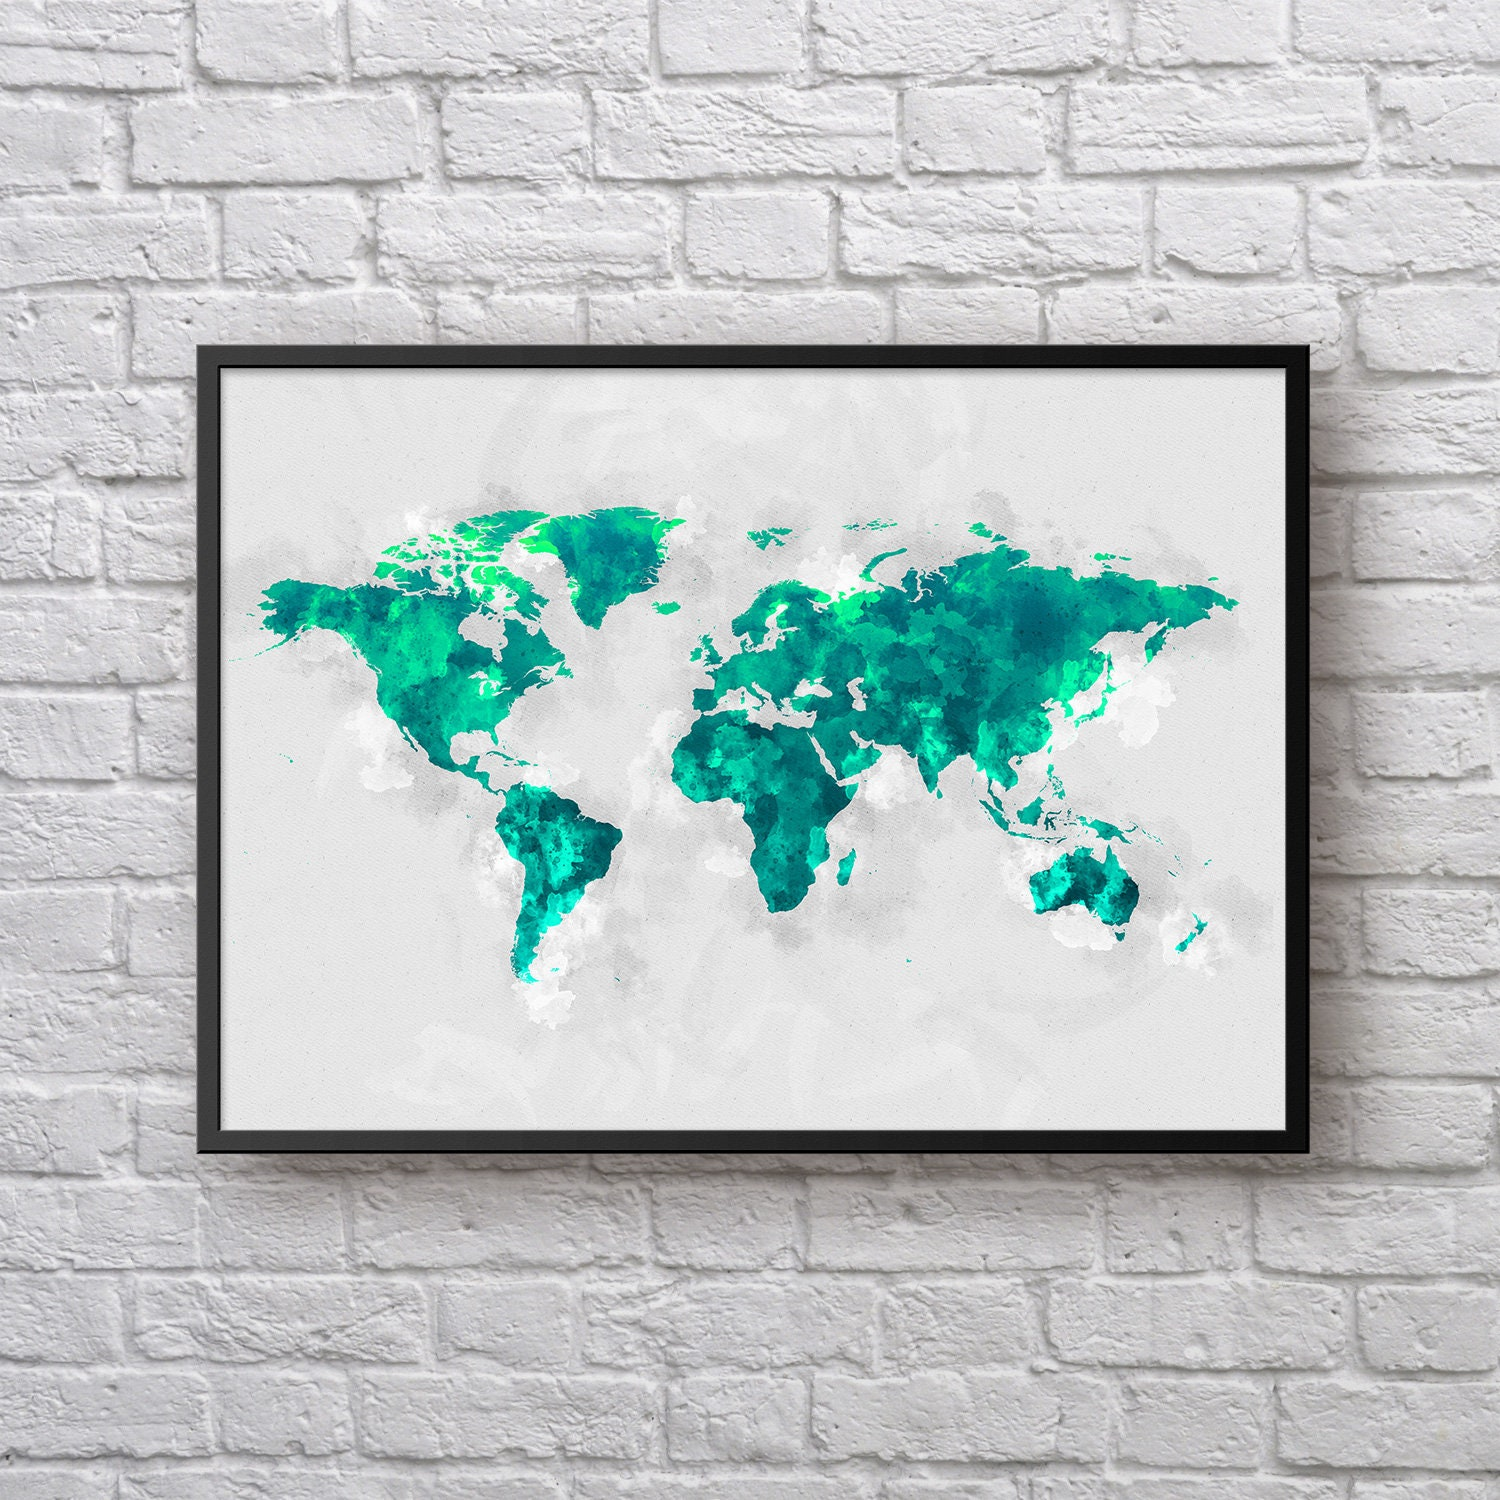 World map poster travel map large world map green watercolor world map poster travel map large world map green watercolor world map world map wall art kids room poster home decor office poster gumiabroncs Choice Image